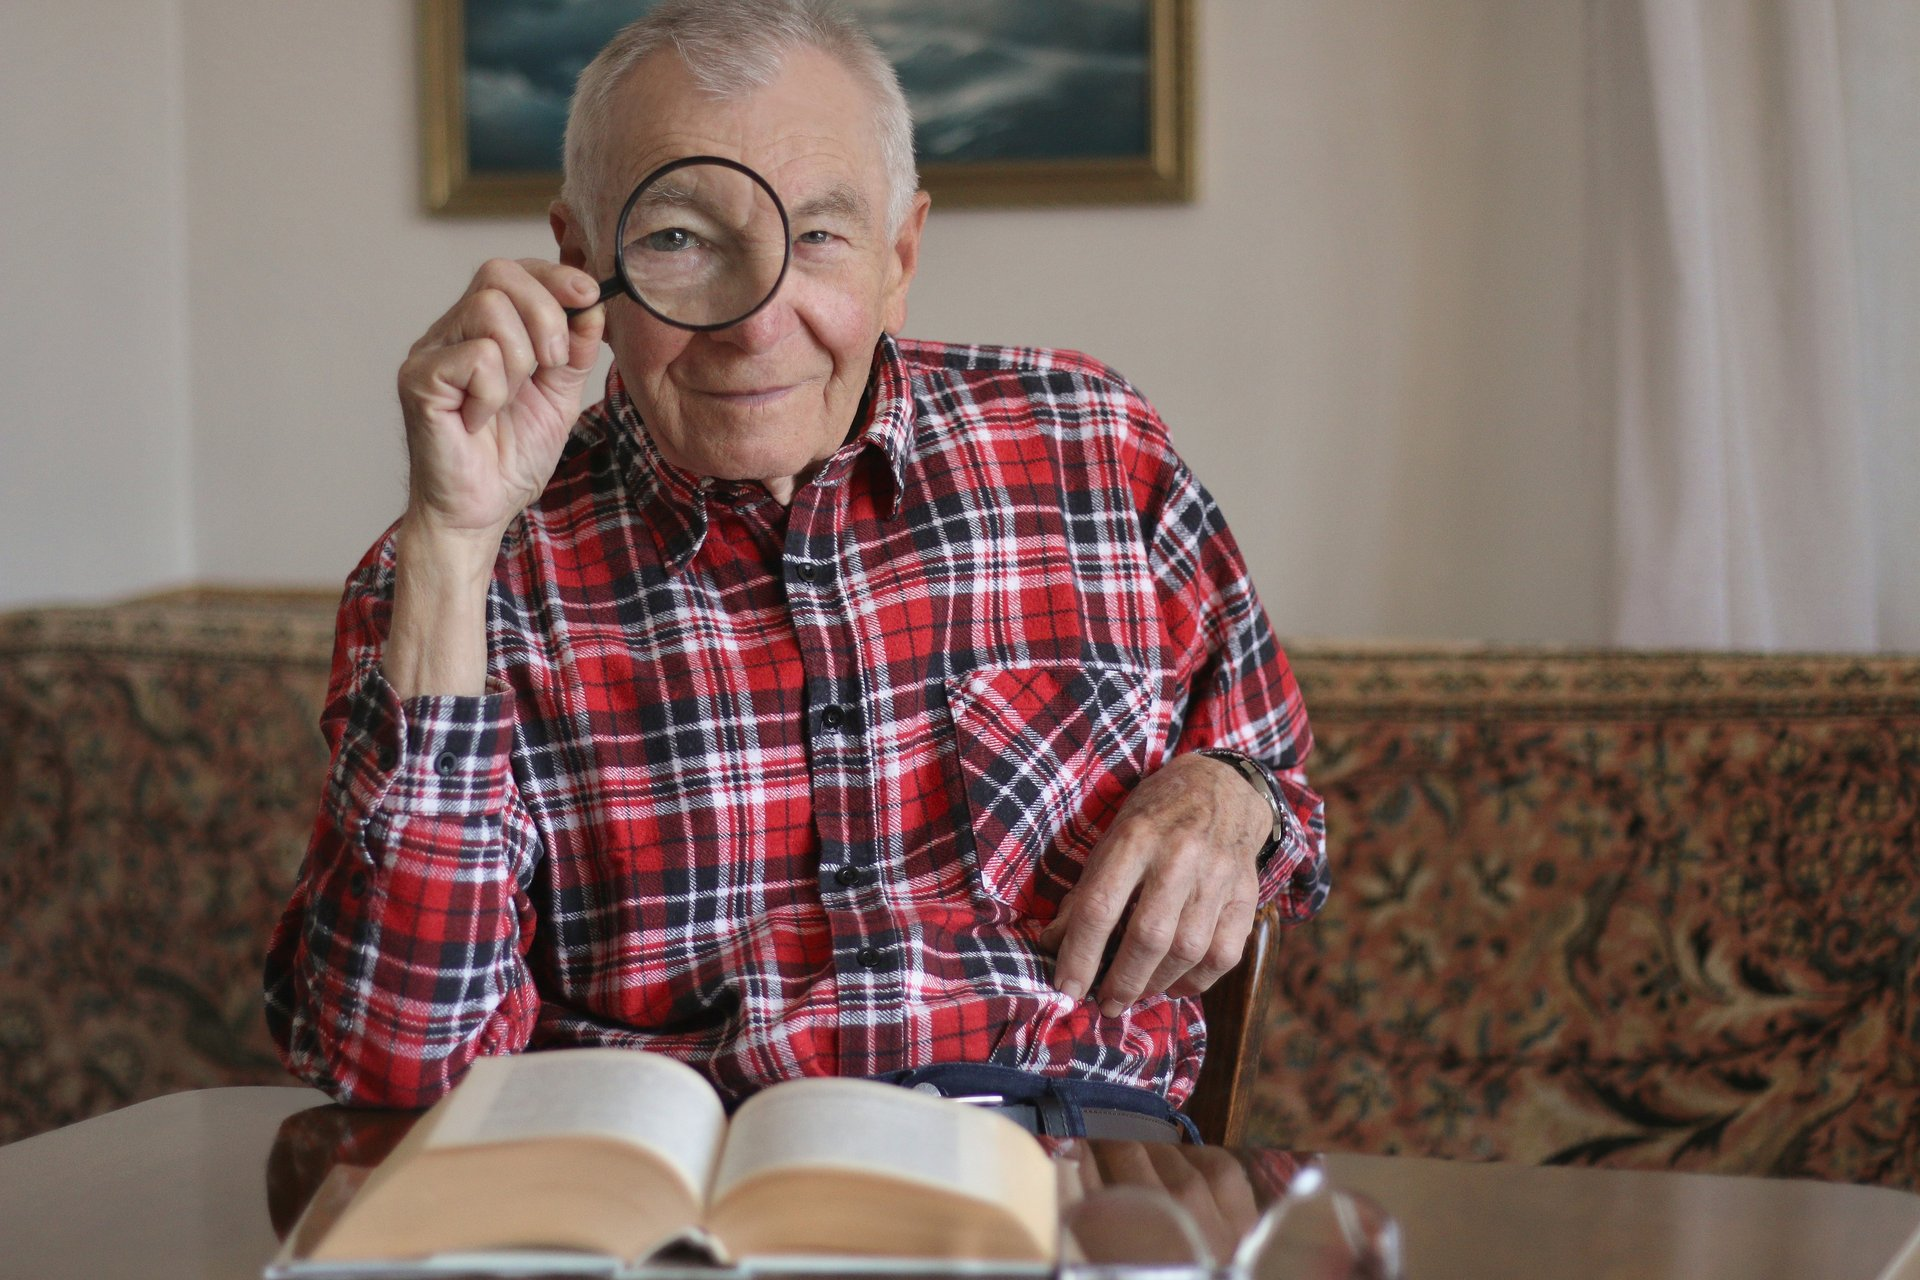 Older man looking through magnifying glass at camera